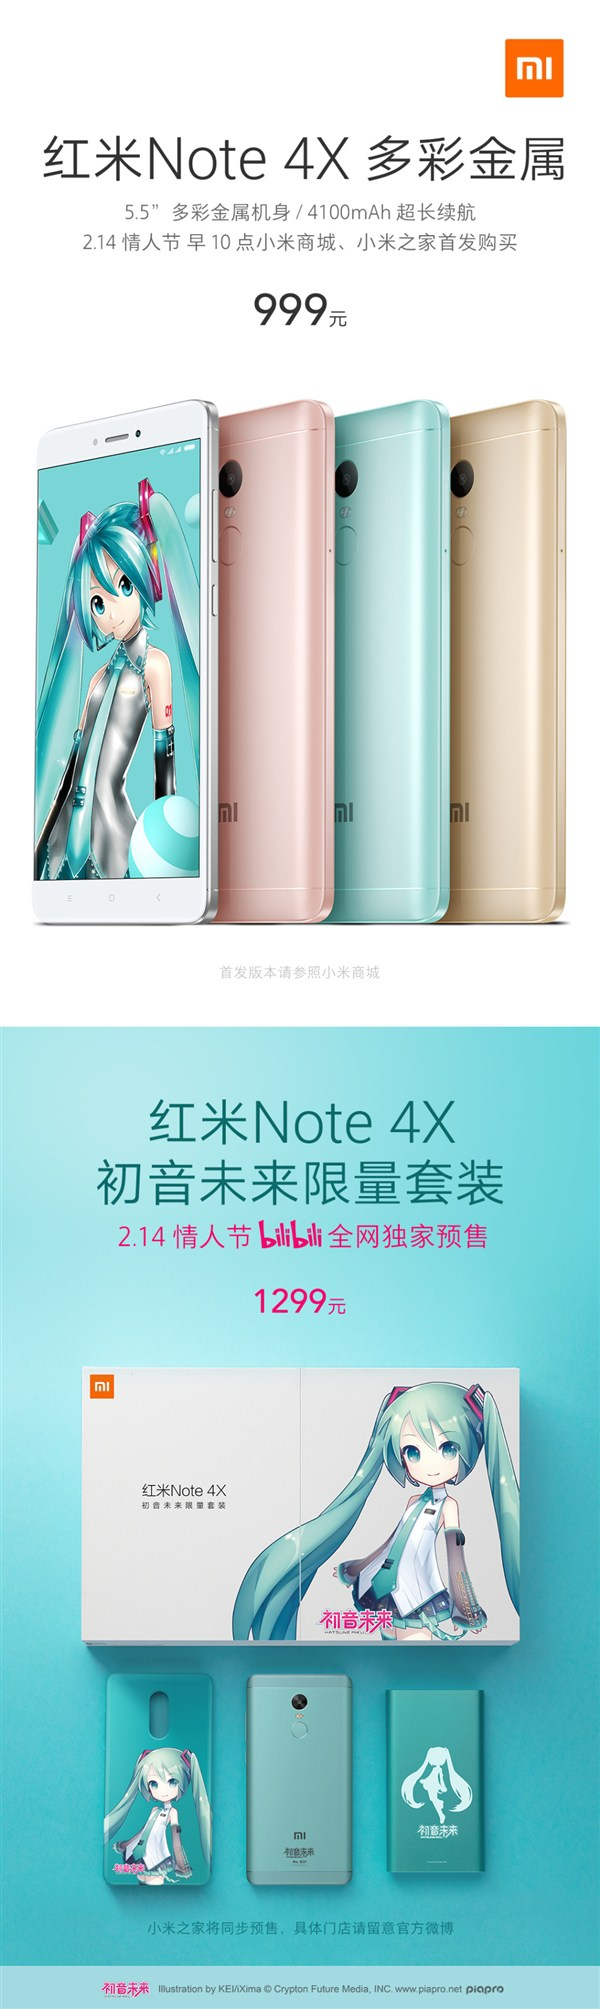 xiaomi-redmi-note-4x-price-2